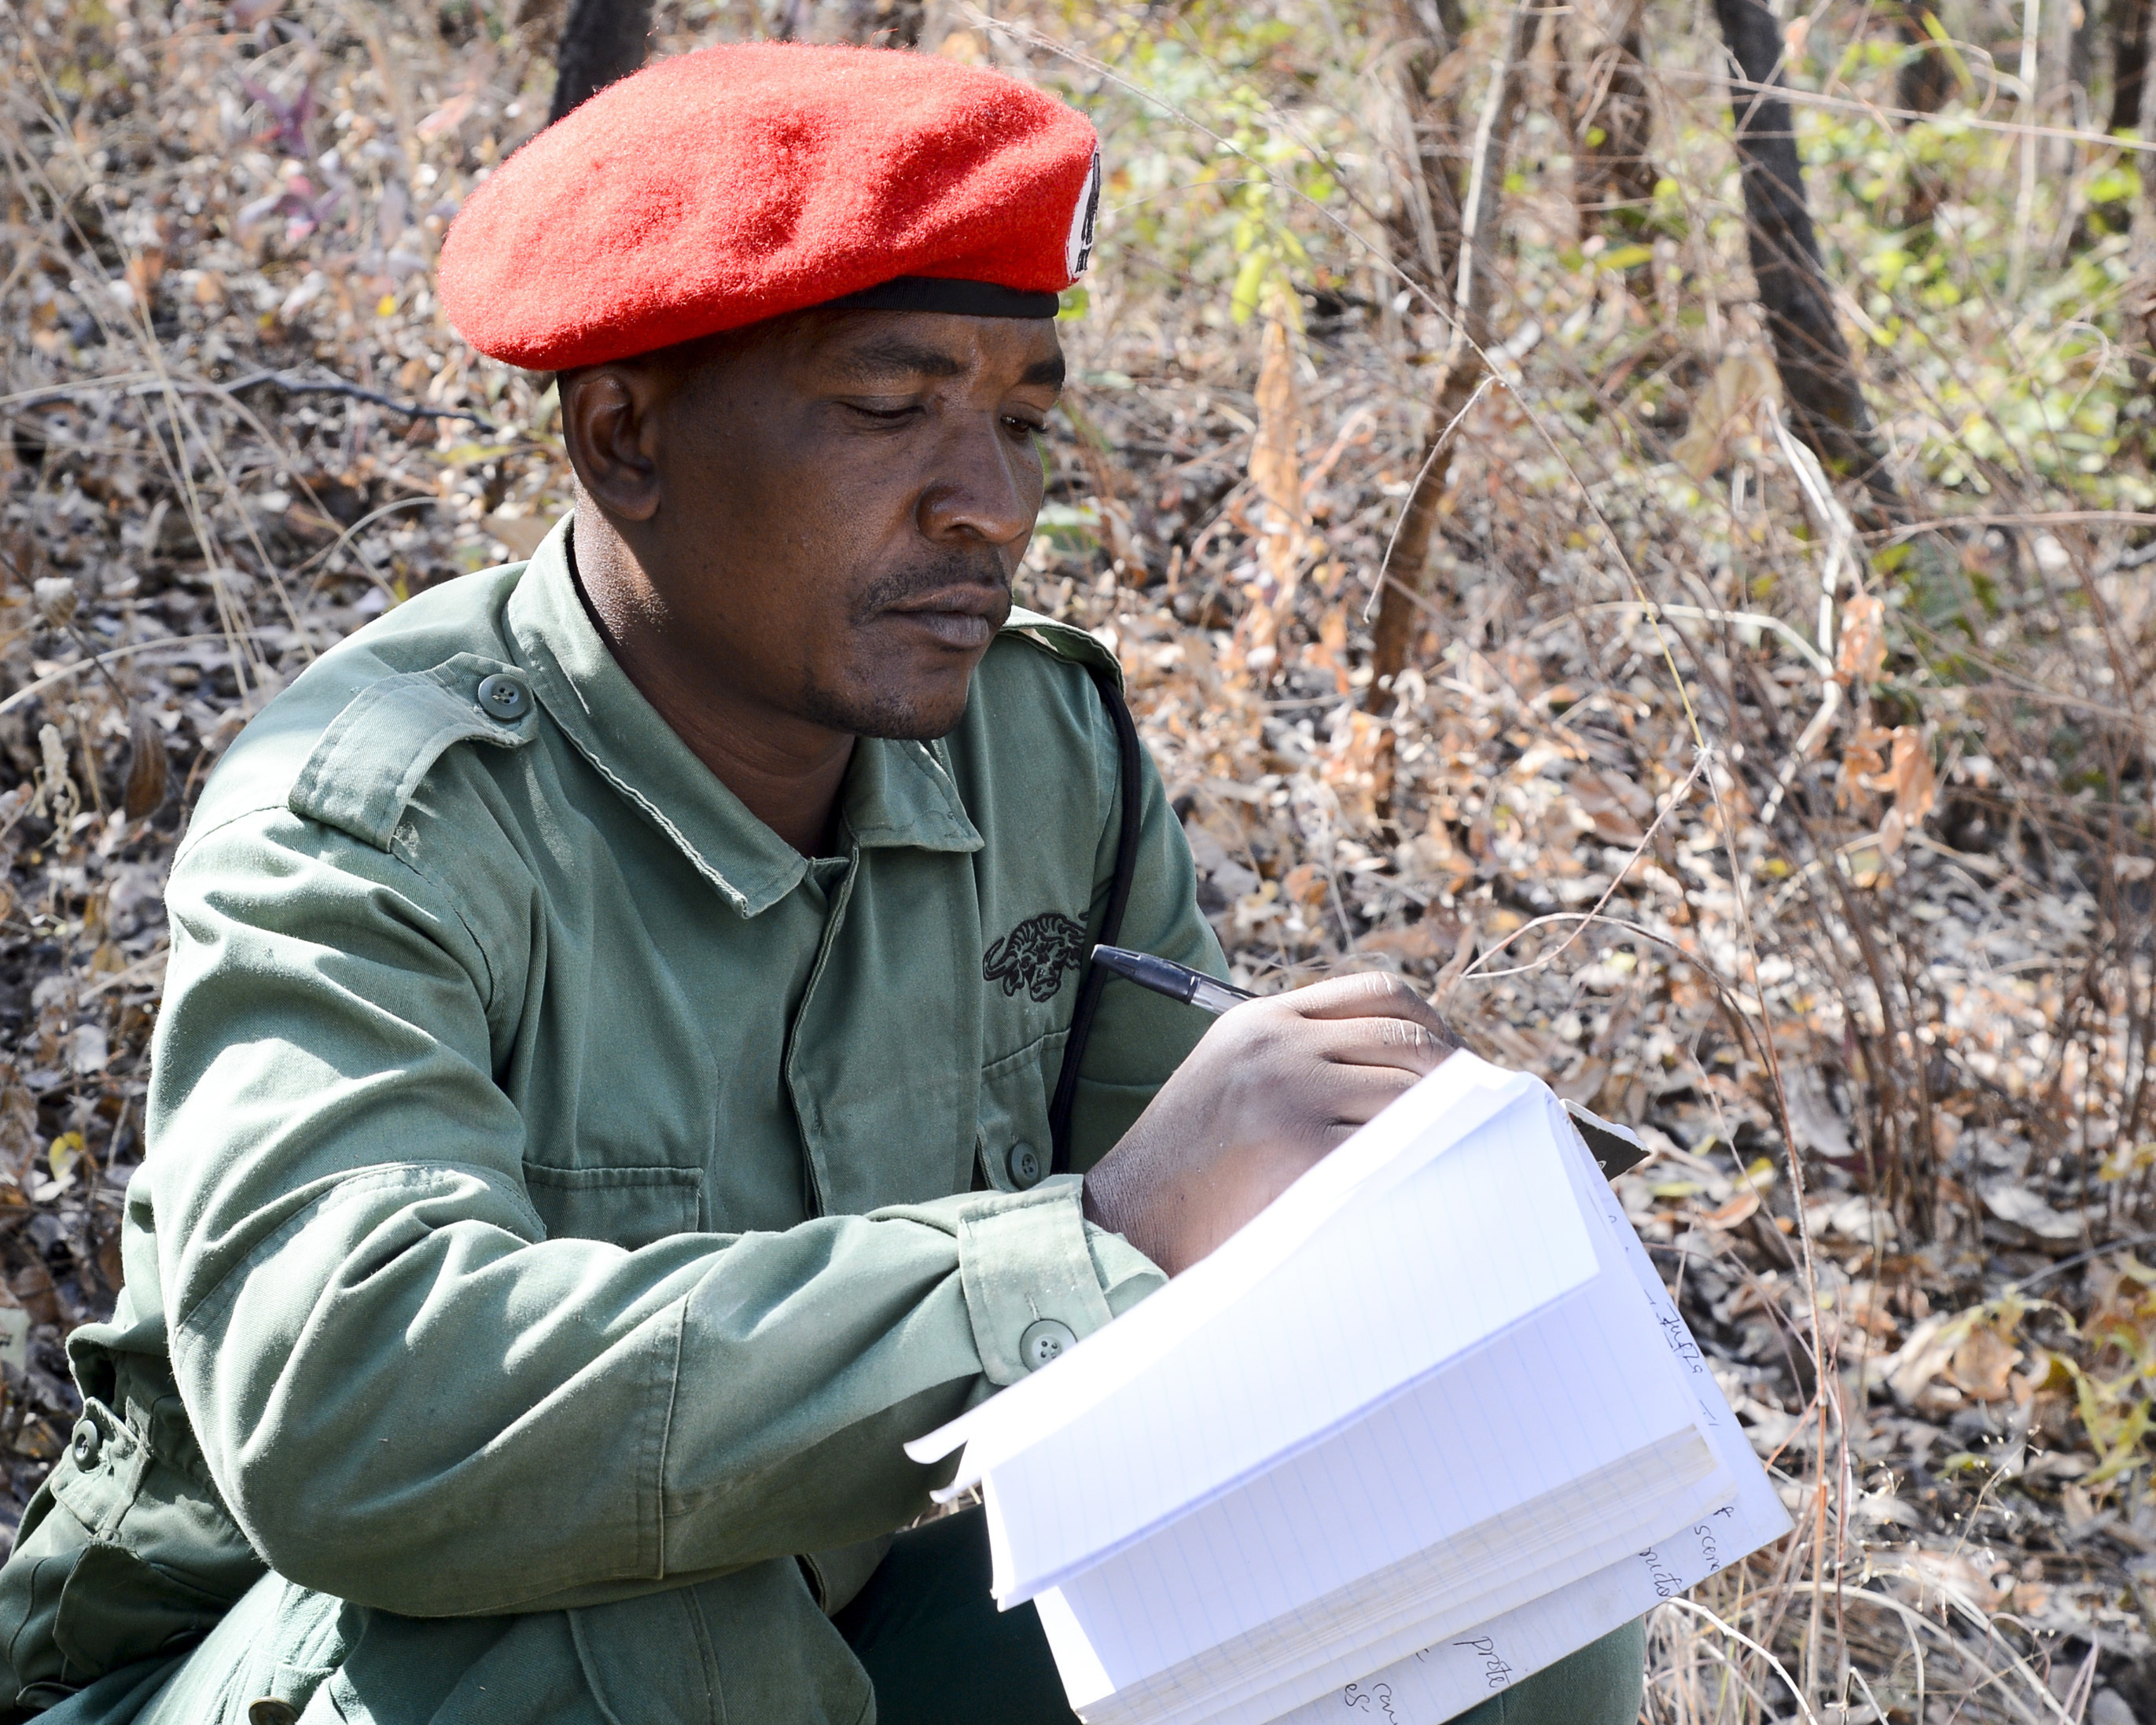 A Tanzania Wildlife Management Authority (TAWA) patrol game warden takes notes during a ground surveillance practical exercise during a Counter Illicit Trafficking course, in Ngwala, Tanzania, July 24, 2018. The course provided by U.S. Army Soldiers with the 404th Civil Affairs Battalion, assigned to Combined Joint Task Force-Horn of Africa is a month-long course to enhance TAWA's anti-poaching capabilities in Tanzania. (U.S. Navy Photo by Mass Communication Specialist 2nd Class Timothy M. Ahearn)